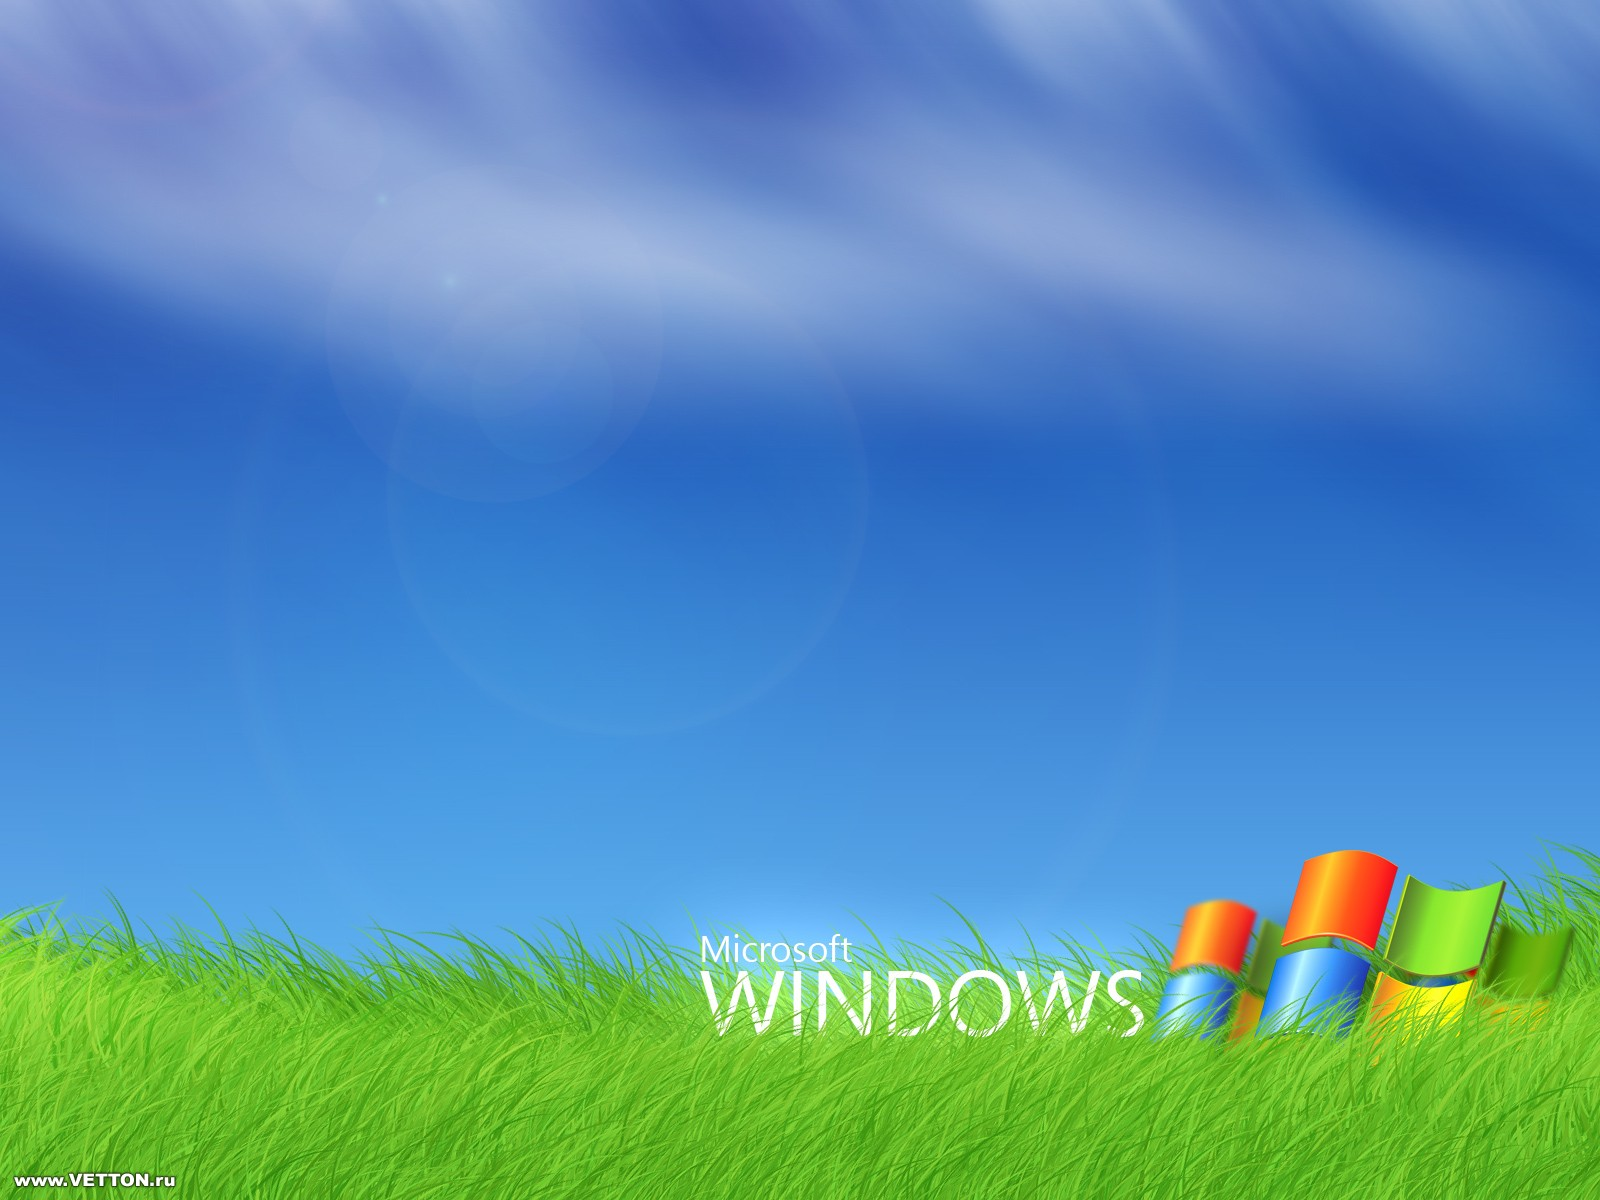 http://4.bp.blogspot.com/_RAlP3BmEW1Q/TQNp7yUAWHI/AAAAAAAABYA/g4f8Gpu3YSY/s1600/Windows-xp-achtergronden-windows-xp-wallpapers-7.jpg